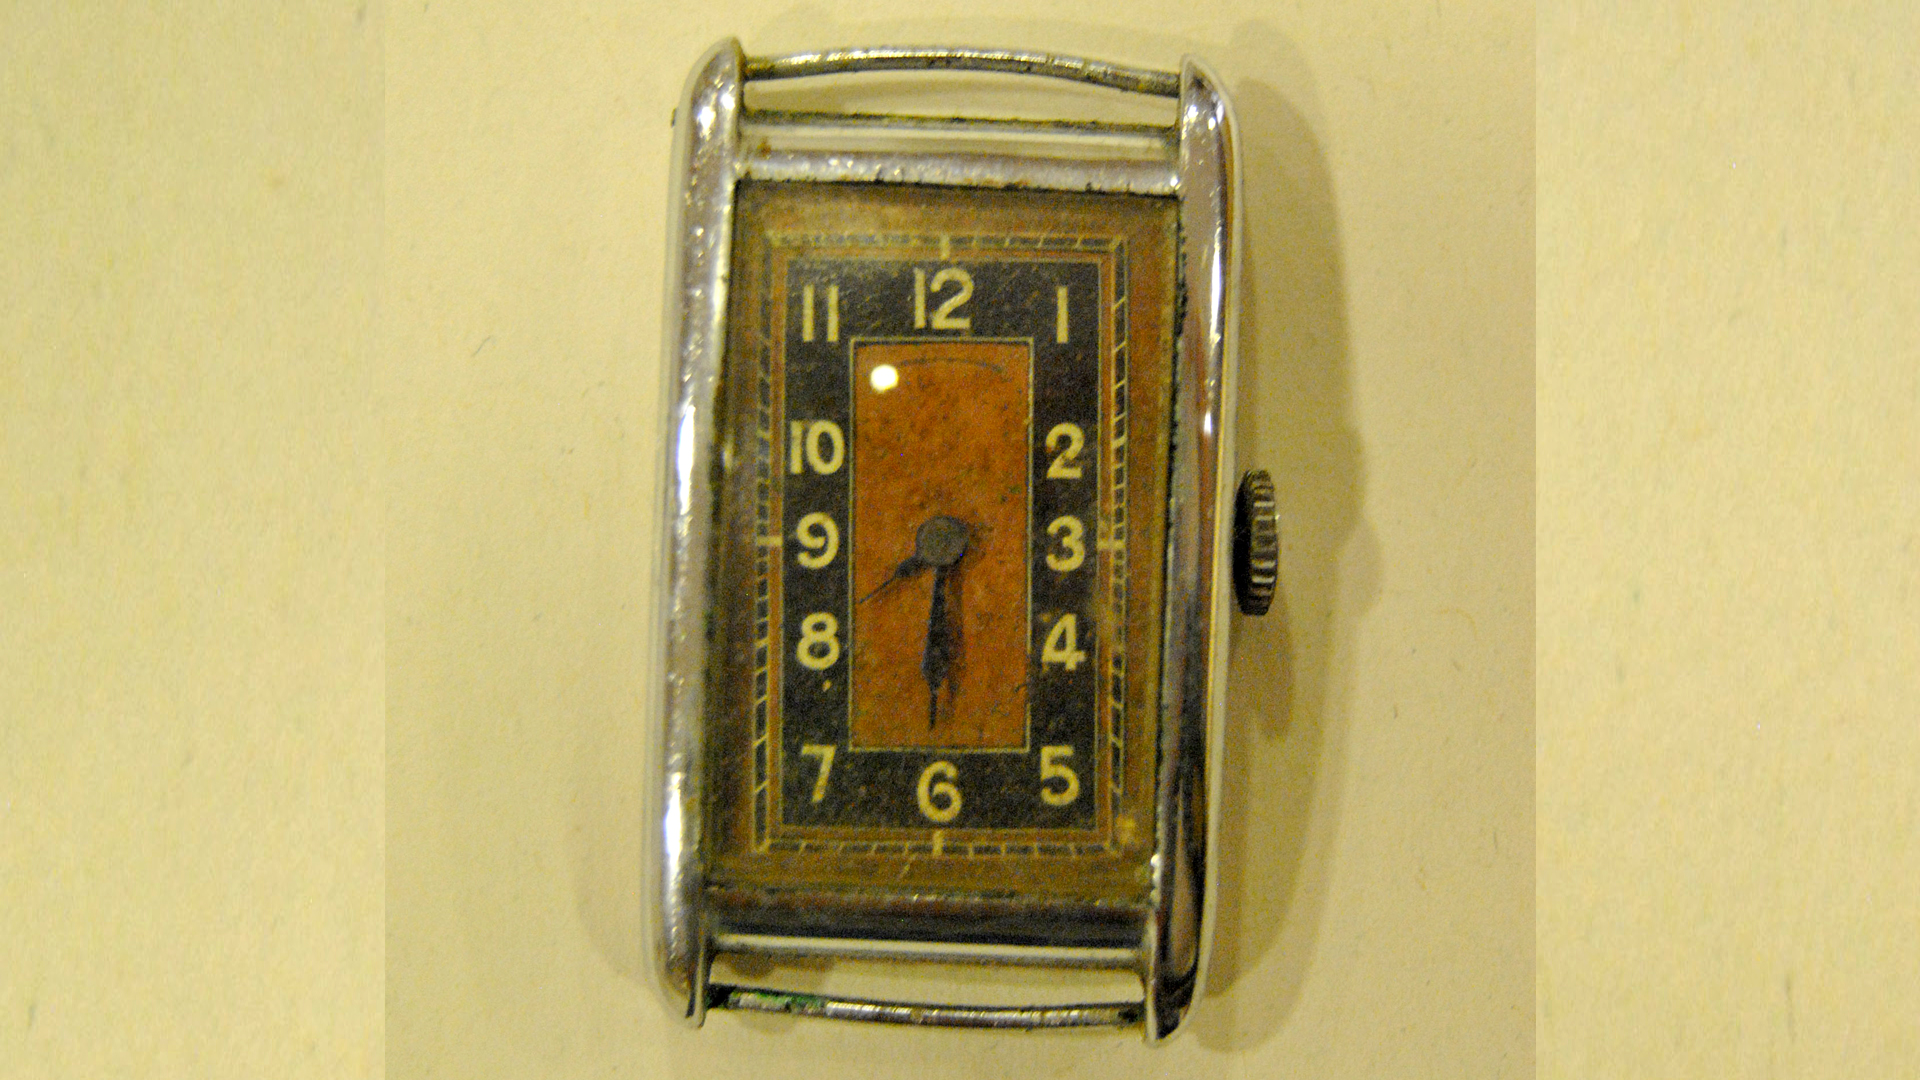 Time To Go Home: Watch Seized By Death Camp Nazis Restored To Victim's Family